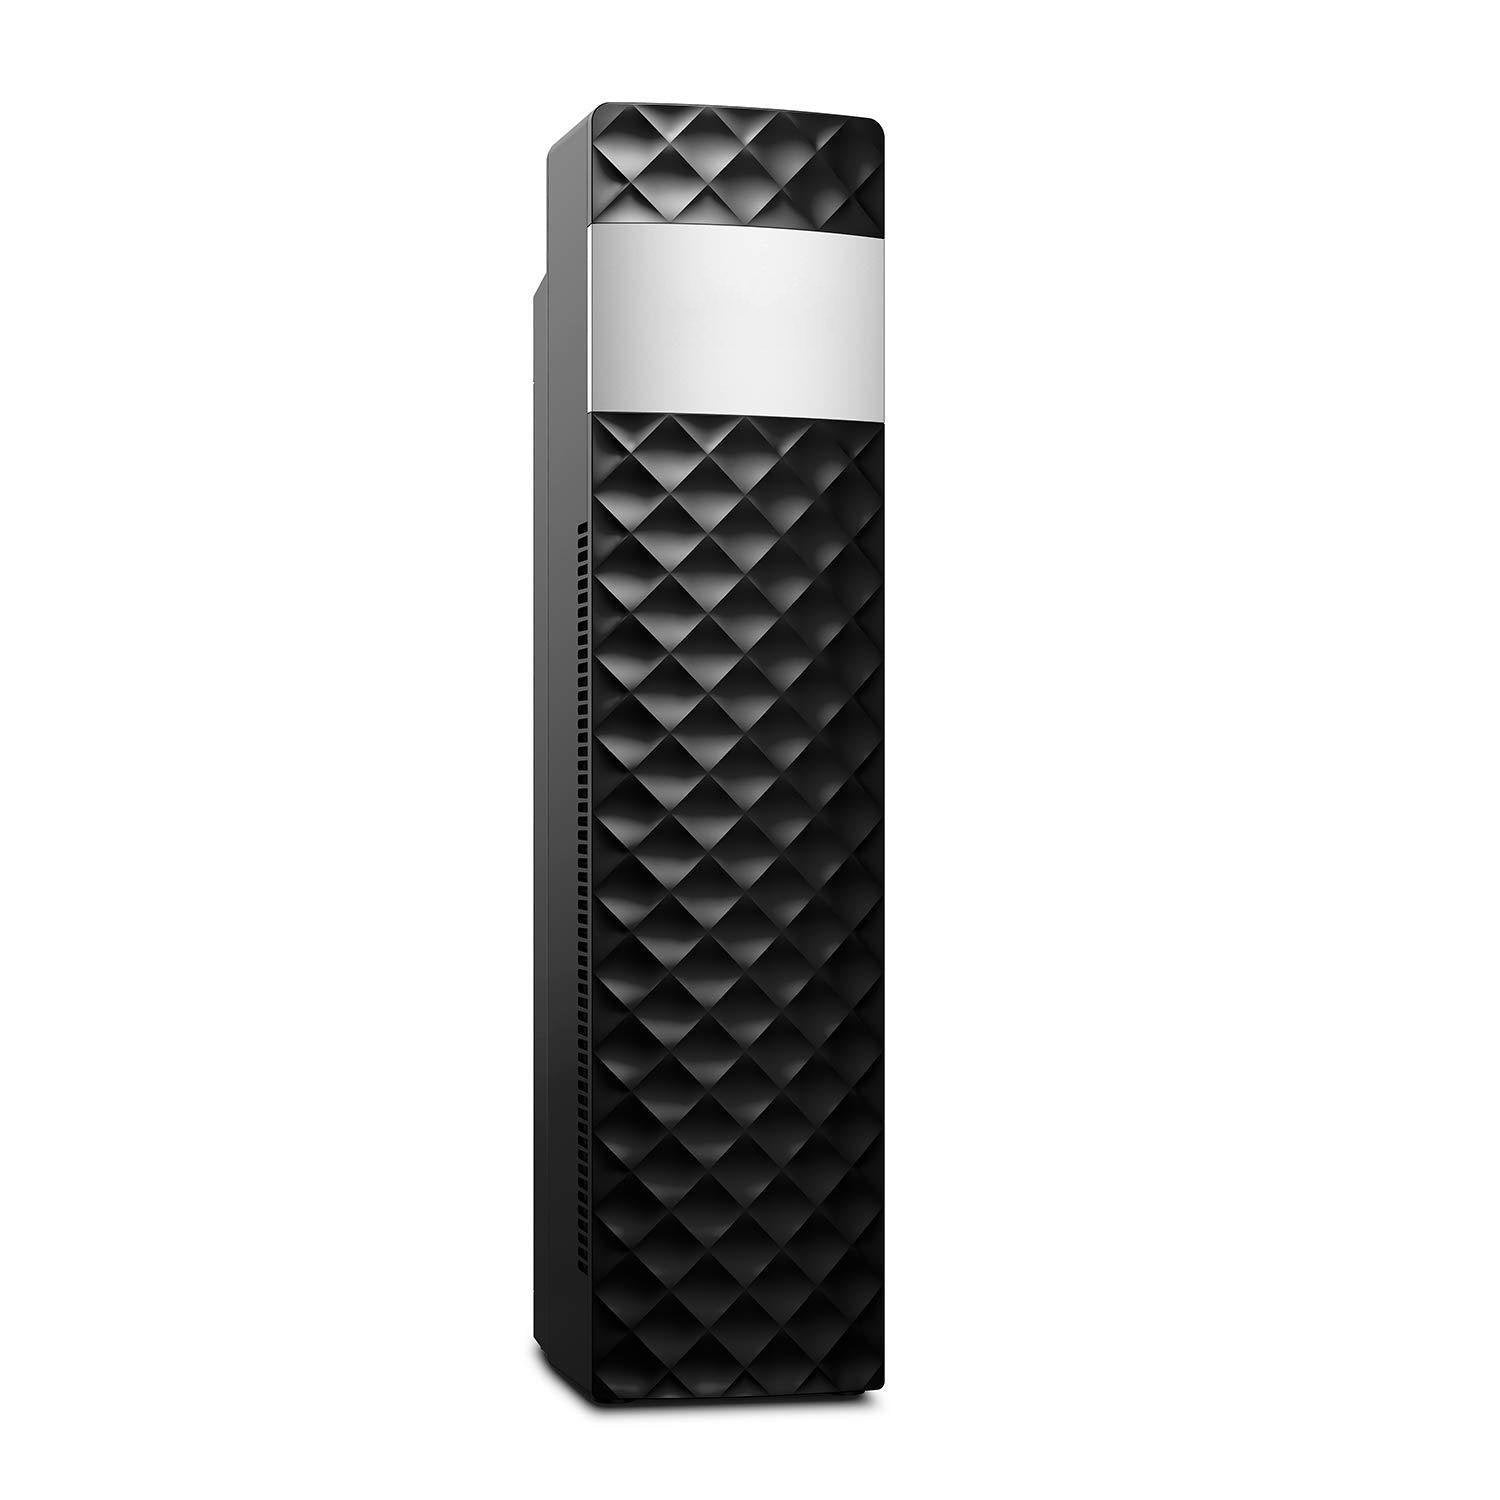 3 in 1 Room Air Purifier with True Filter